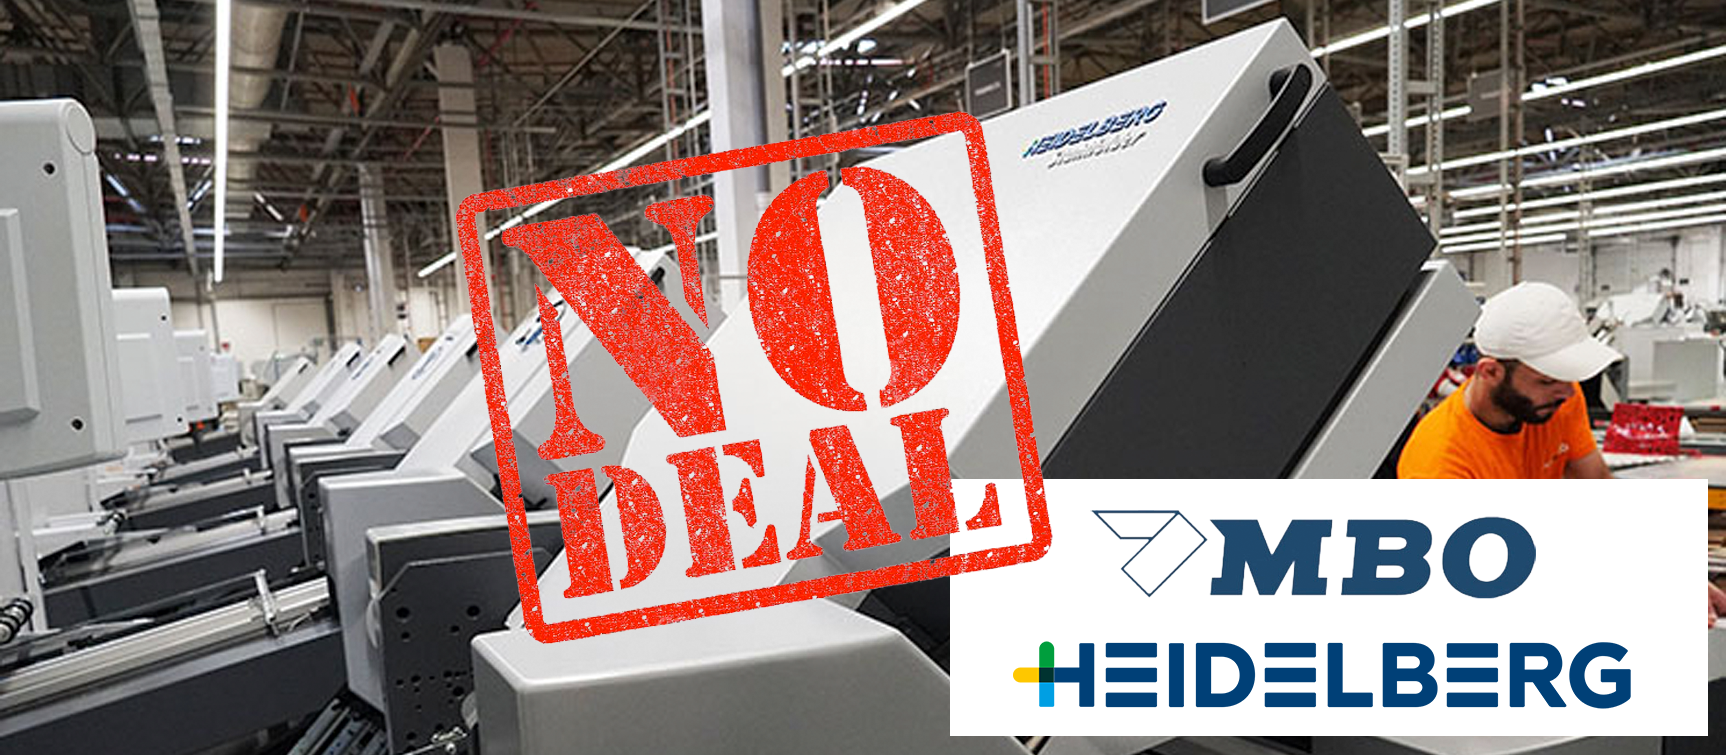 Takeover: No Deal for MBO and Heidelberg